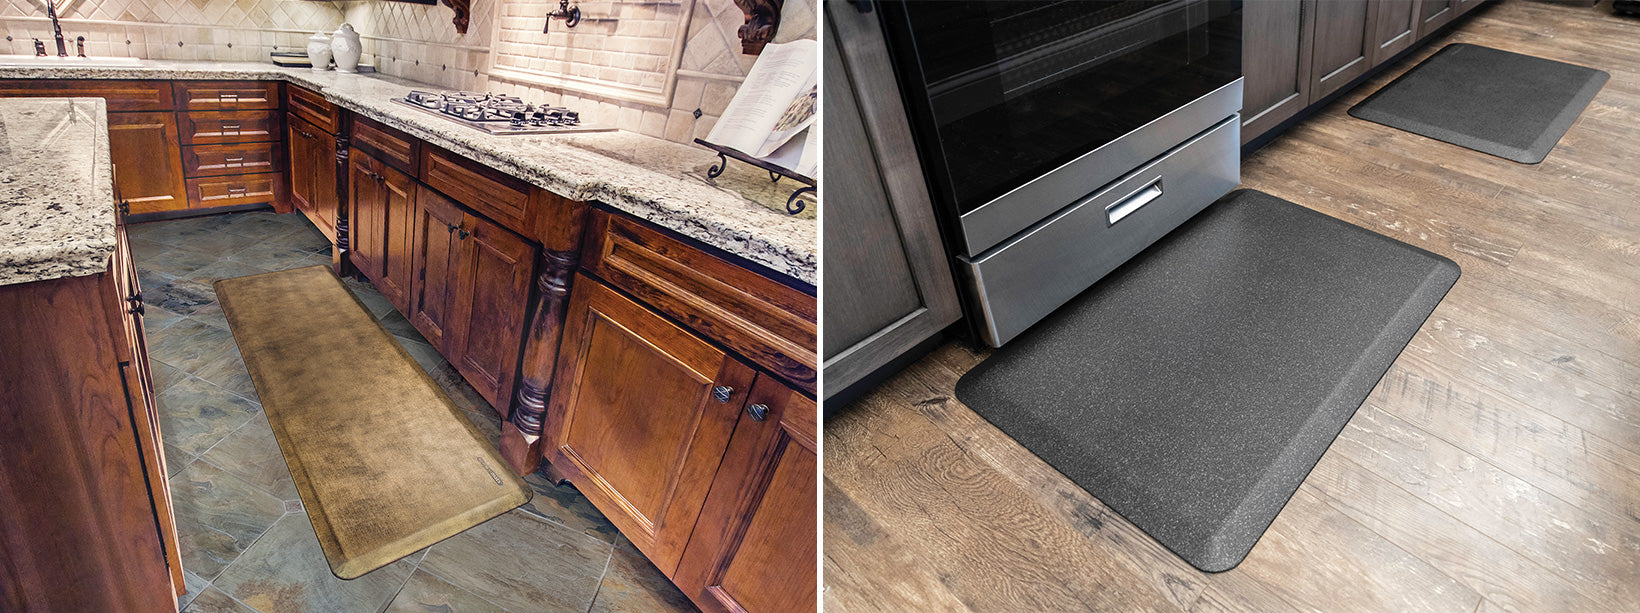 Linen & Granite WellnessMats in the Kitchen